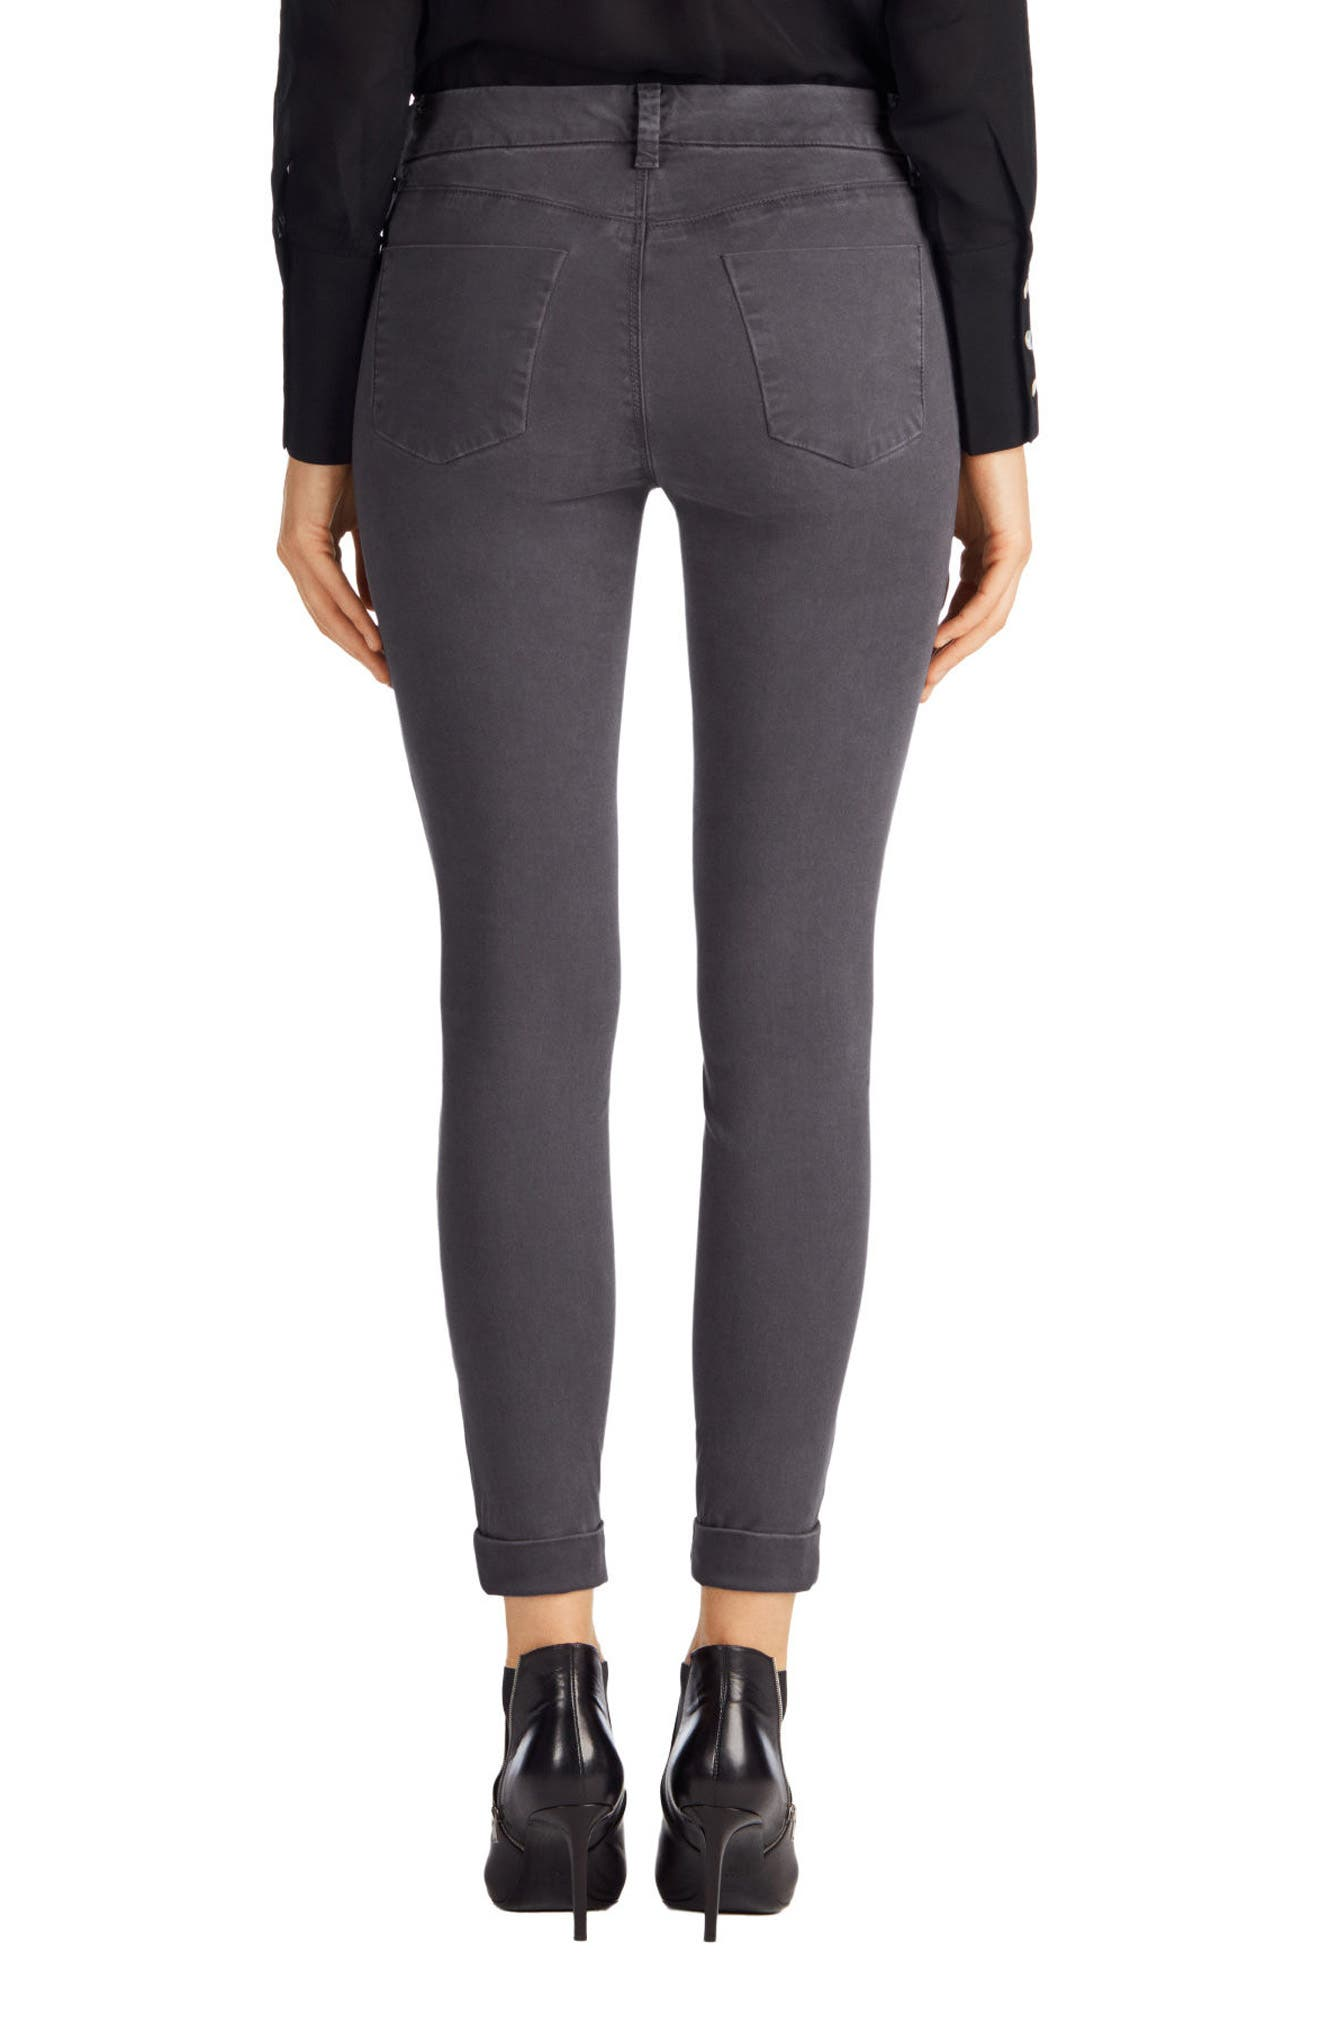 'Anja' Cuffed Crop Skinny Jeans,                             Alternate thumbnail 19, color,